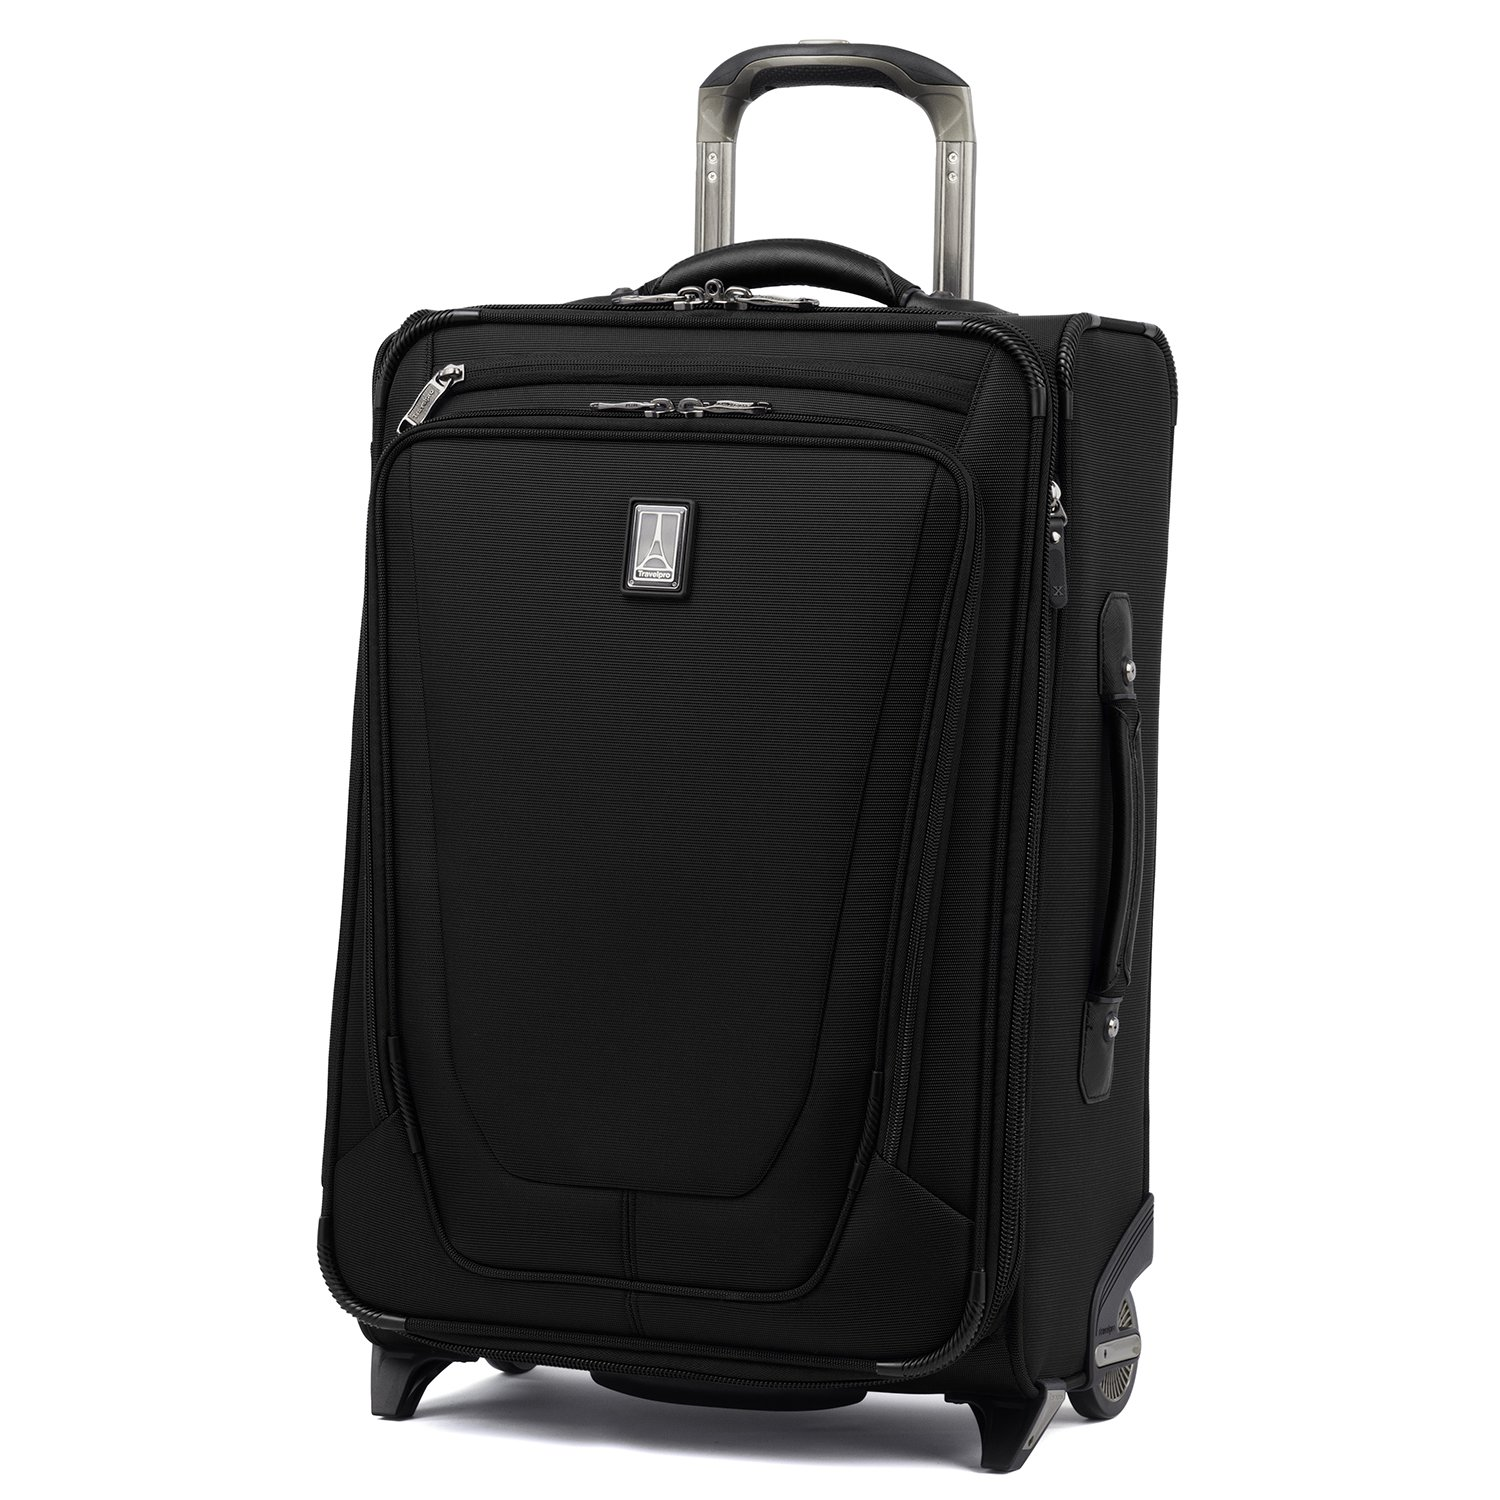 Travelpro Crew 11 22'' Expandable Rollaboard Wheeled Suiter Suitcase, Black